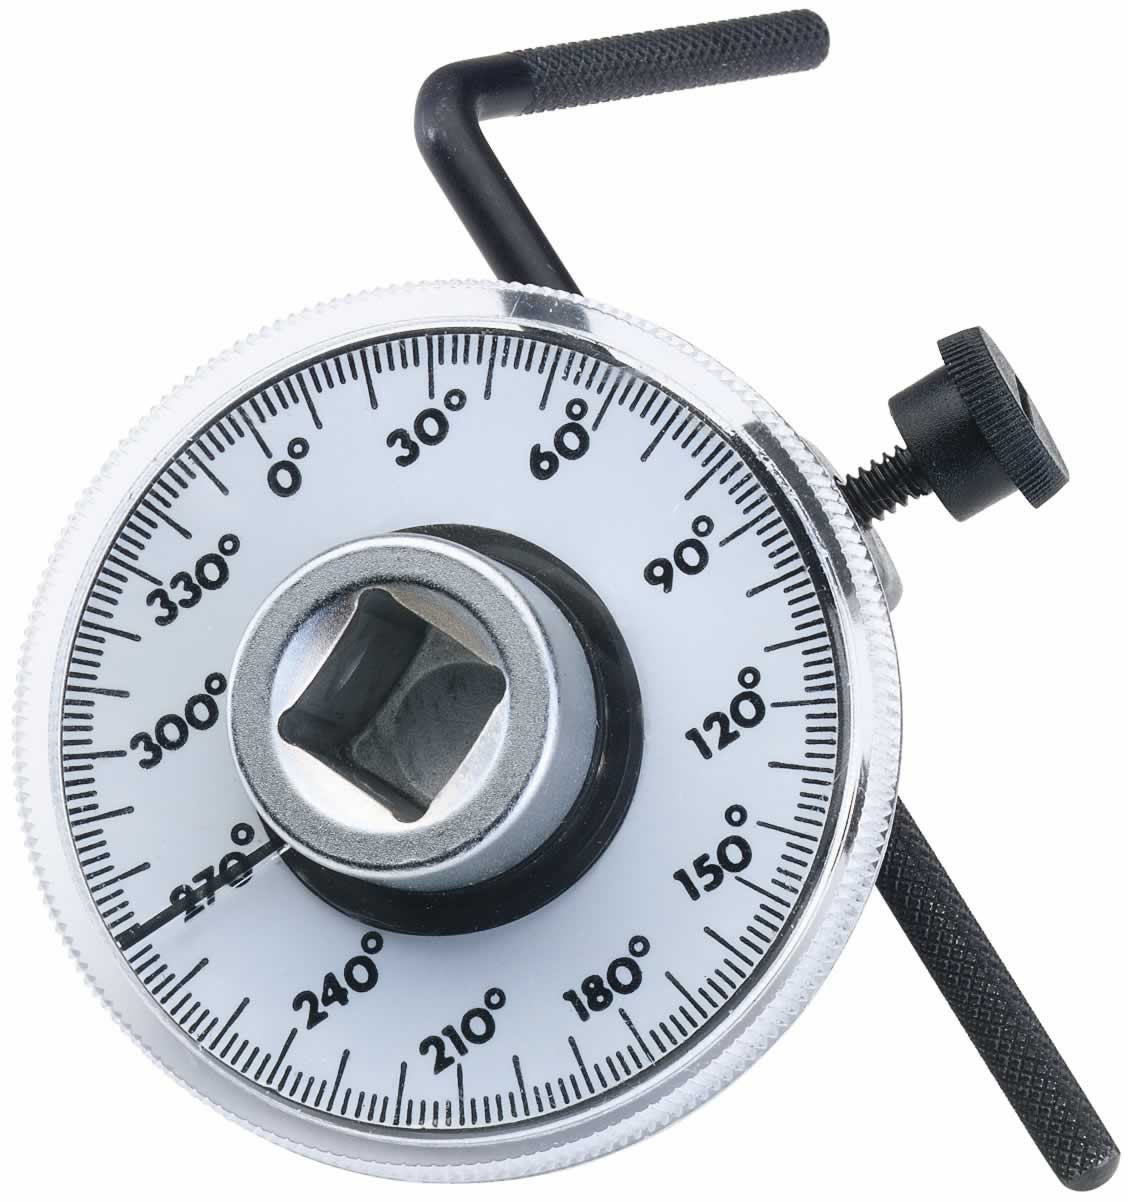 "EXPERT 1/2"" SQ. DR. TORQUE SETTING ANGULAR GAUGE"